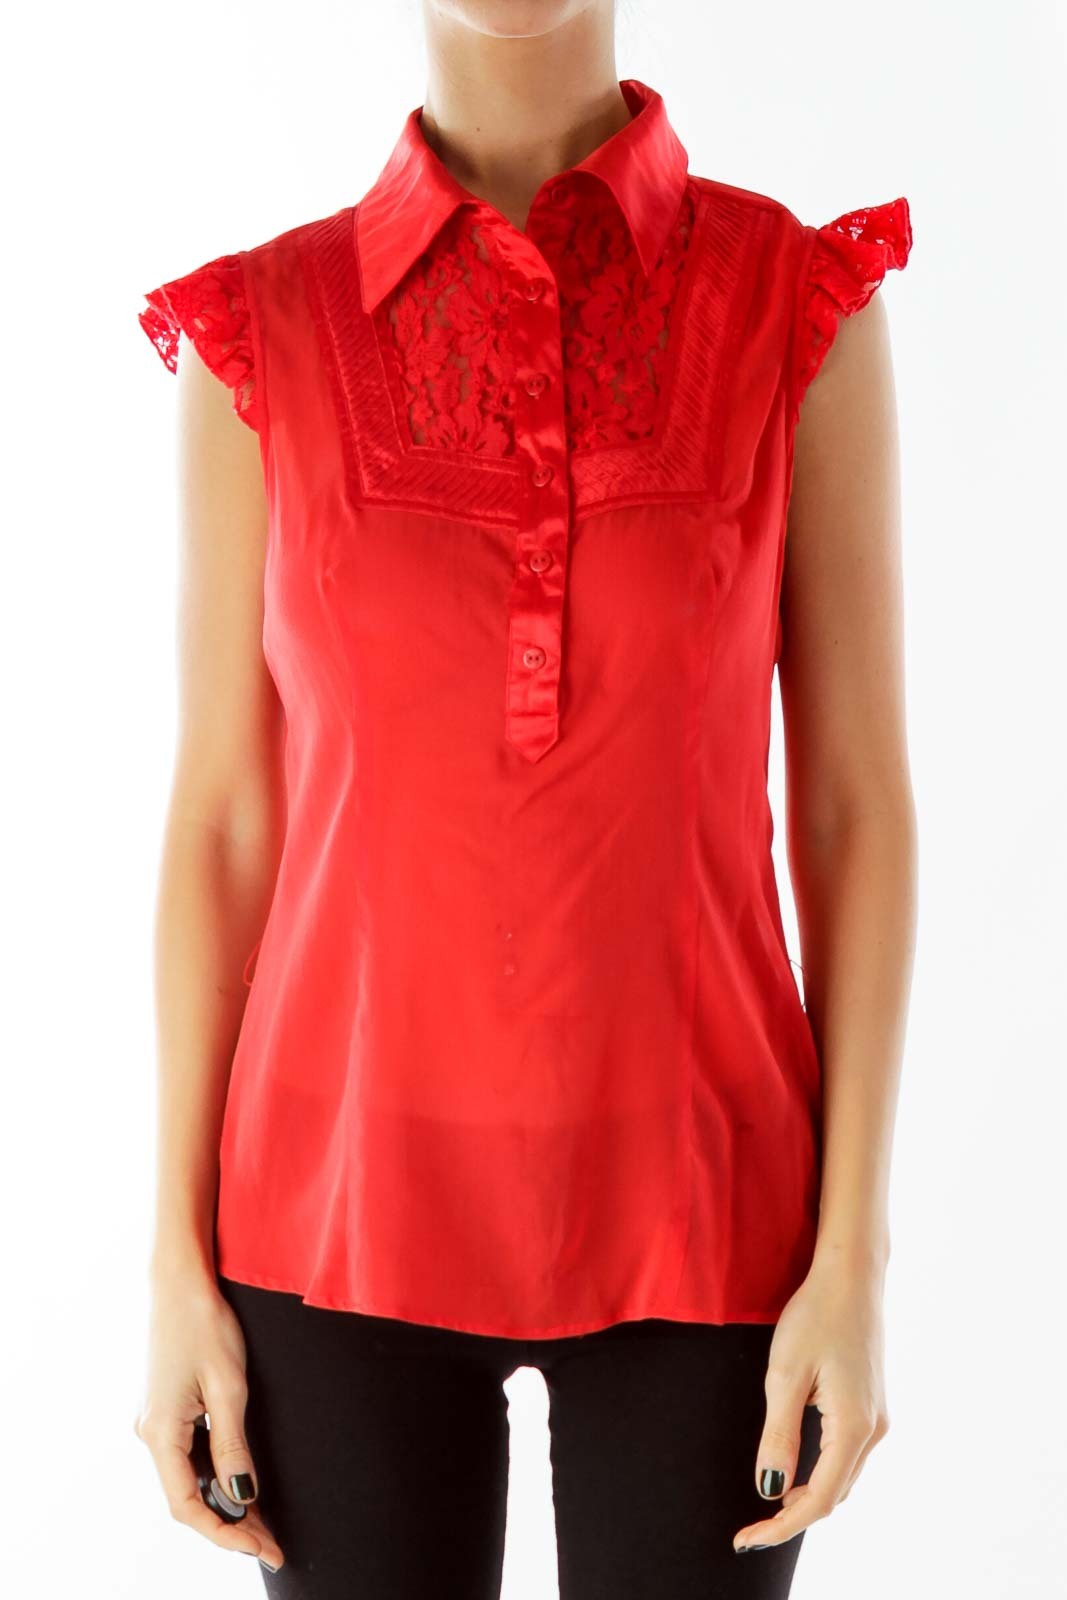 Red Lace Sleeveless Blouse